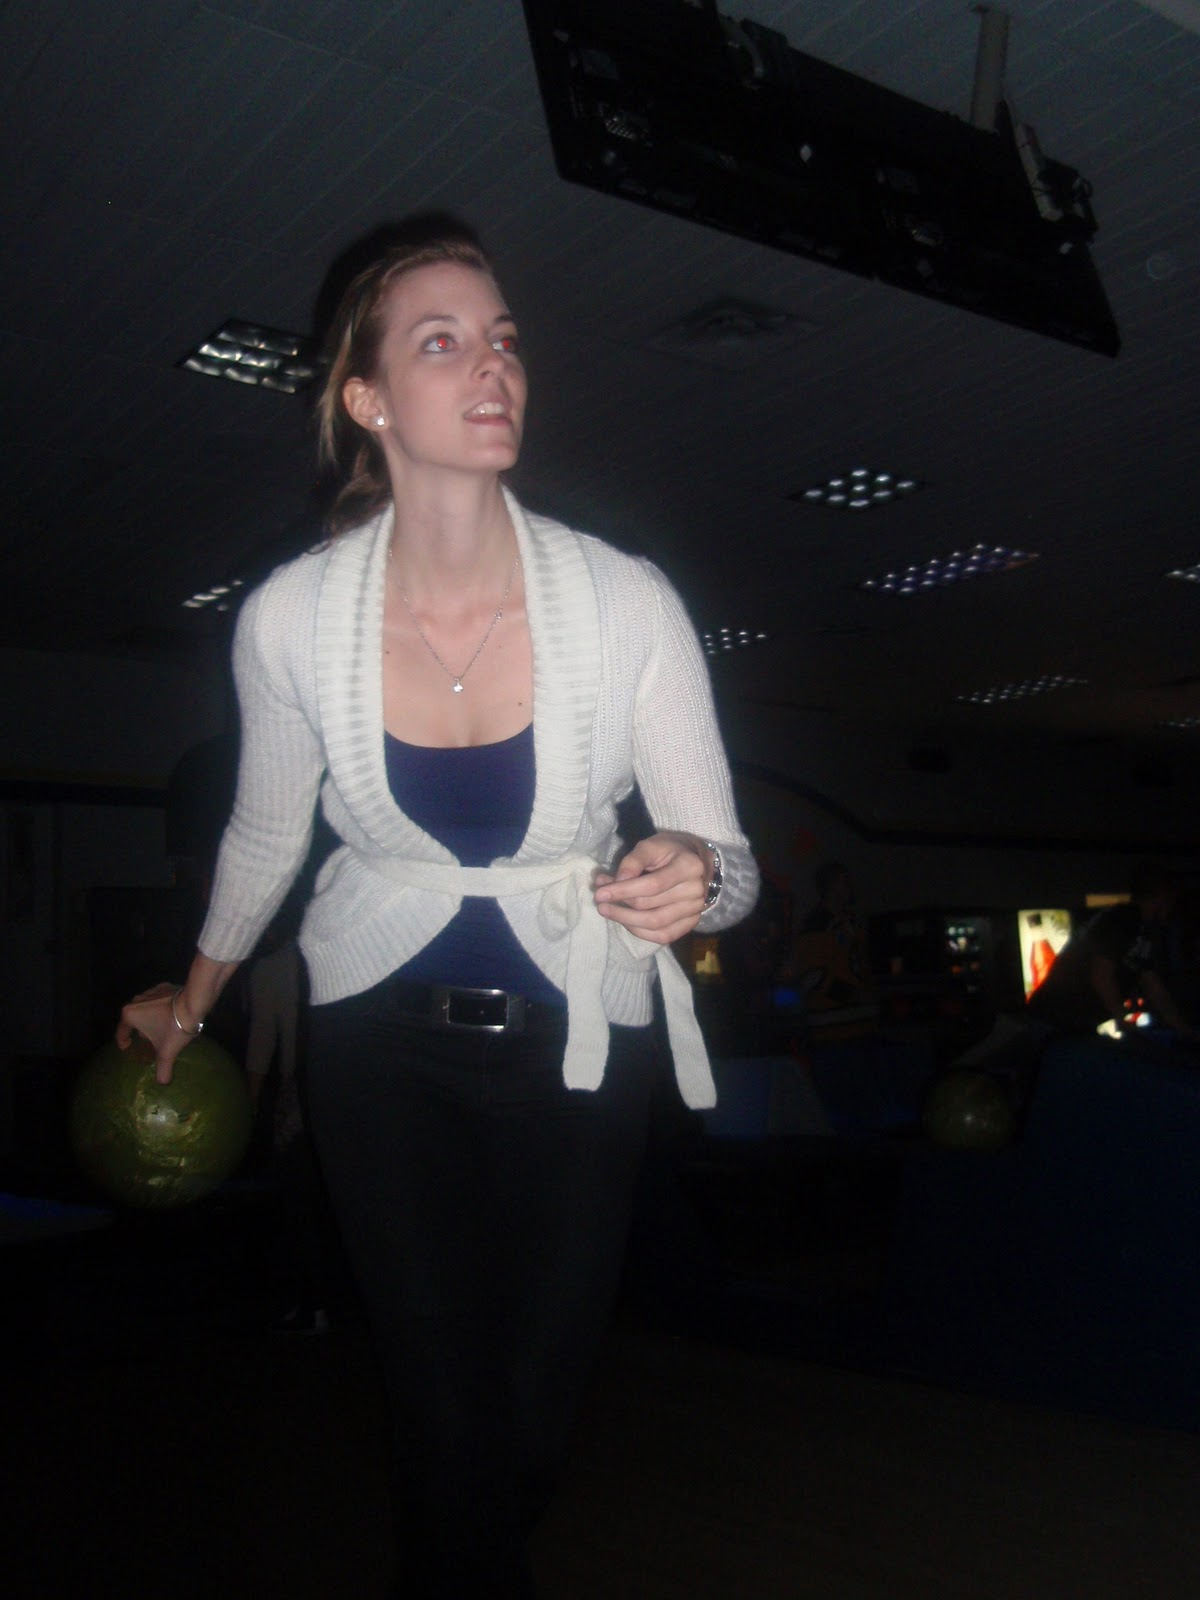 jens in canton bowling glow in the dark bowling. Black Bedroom Furniture Sets. Home Design Ideas